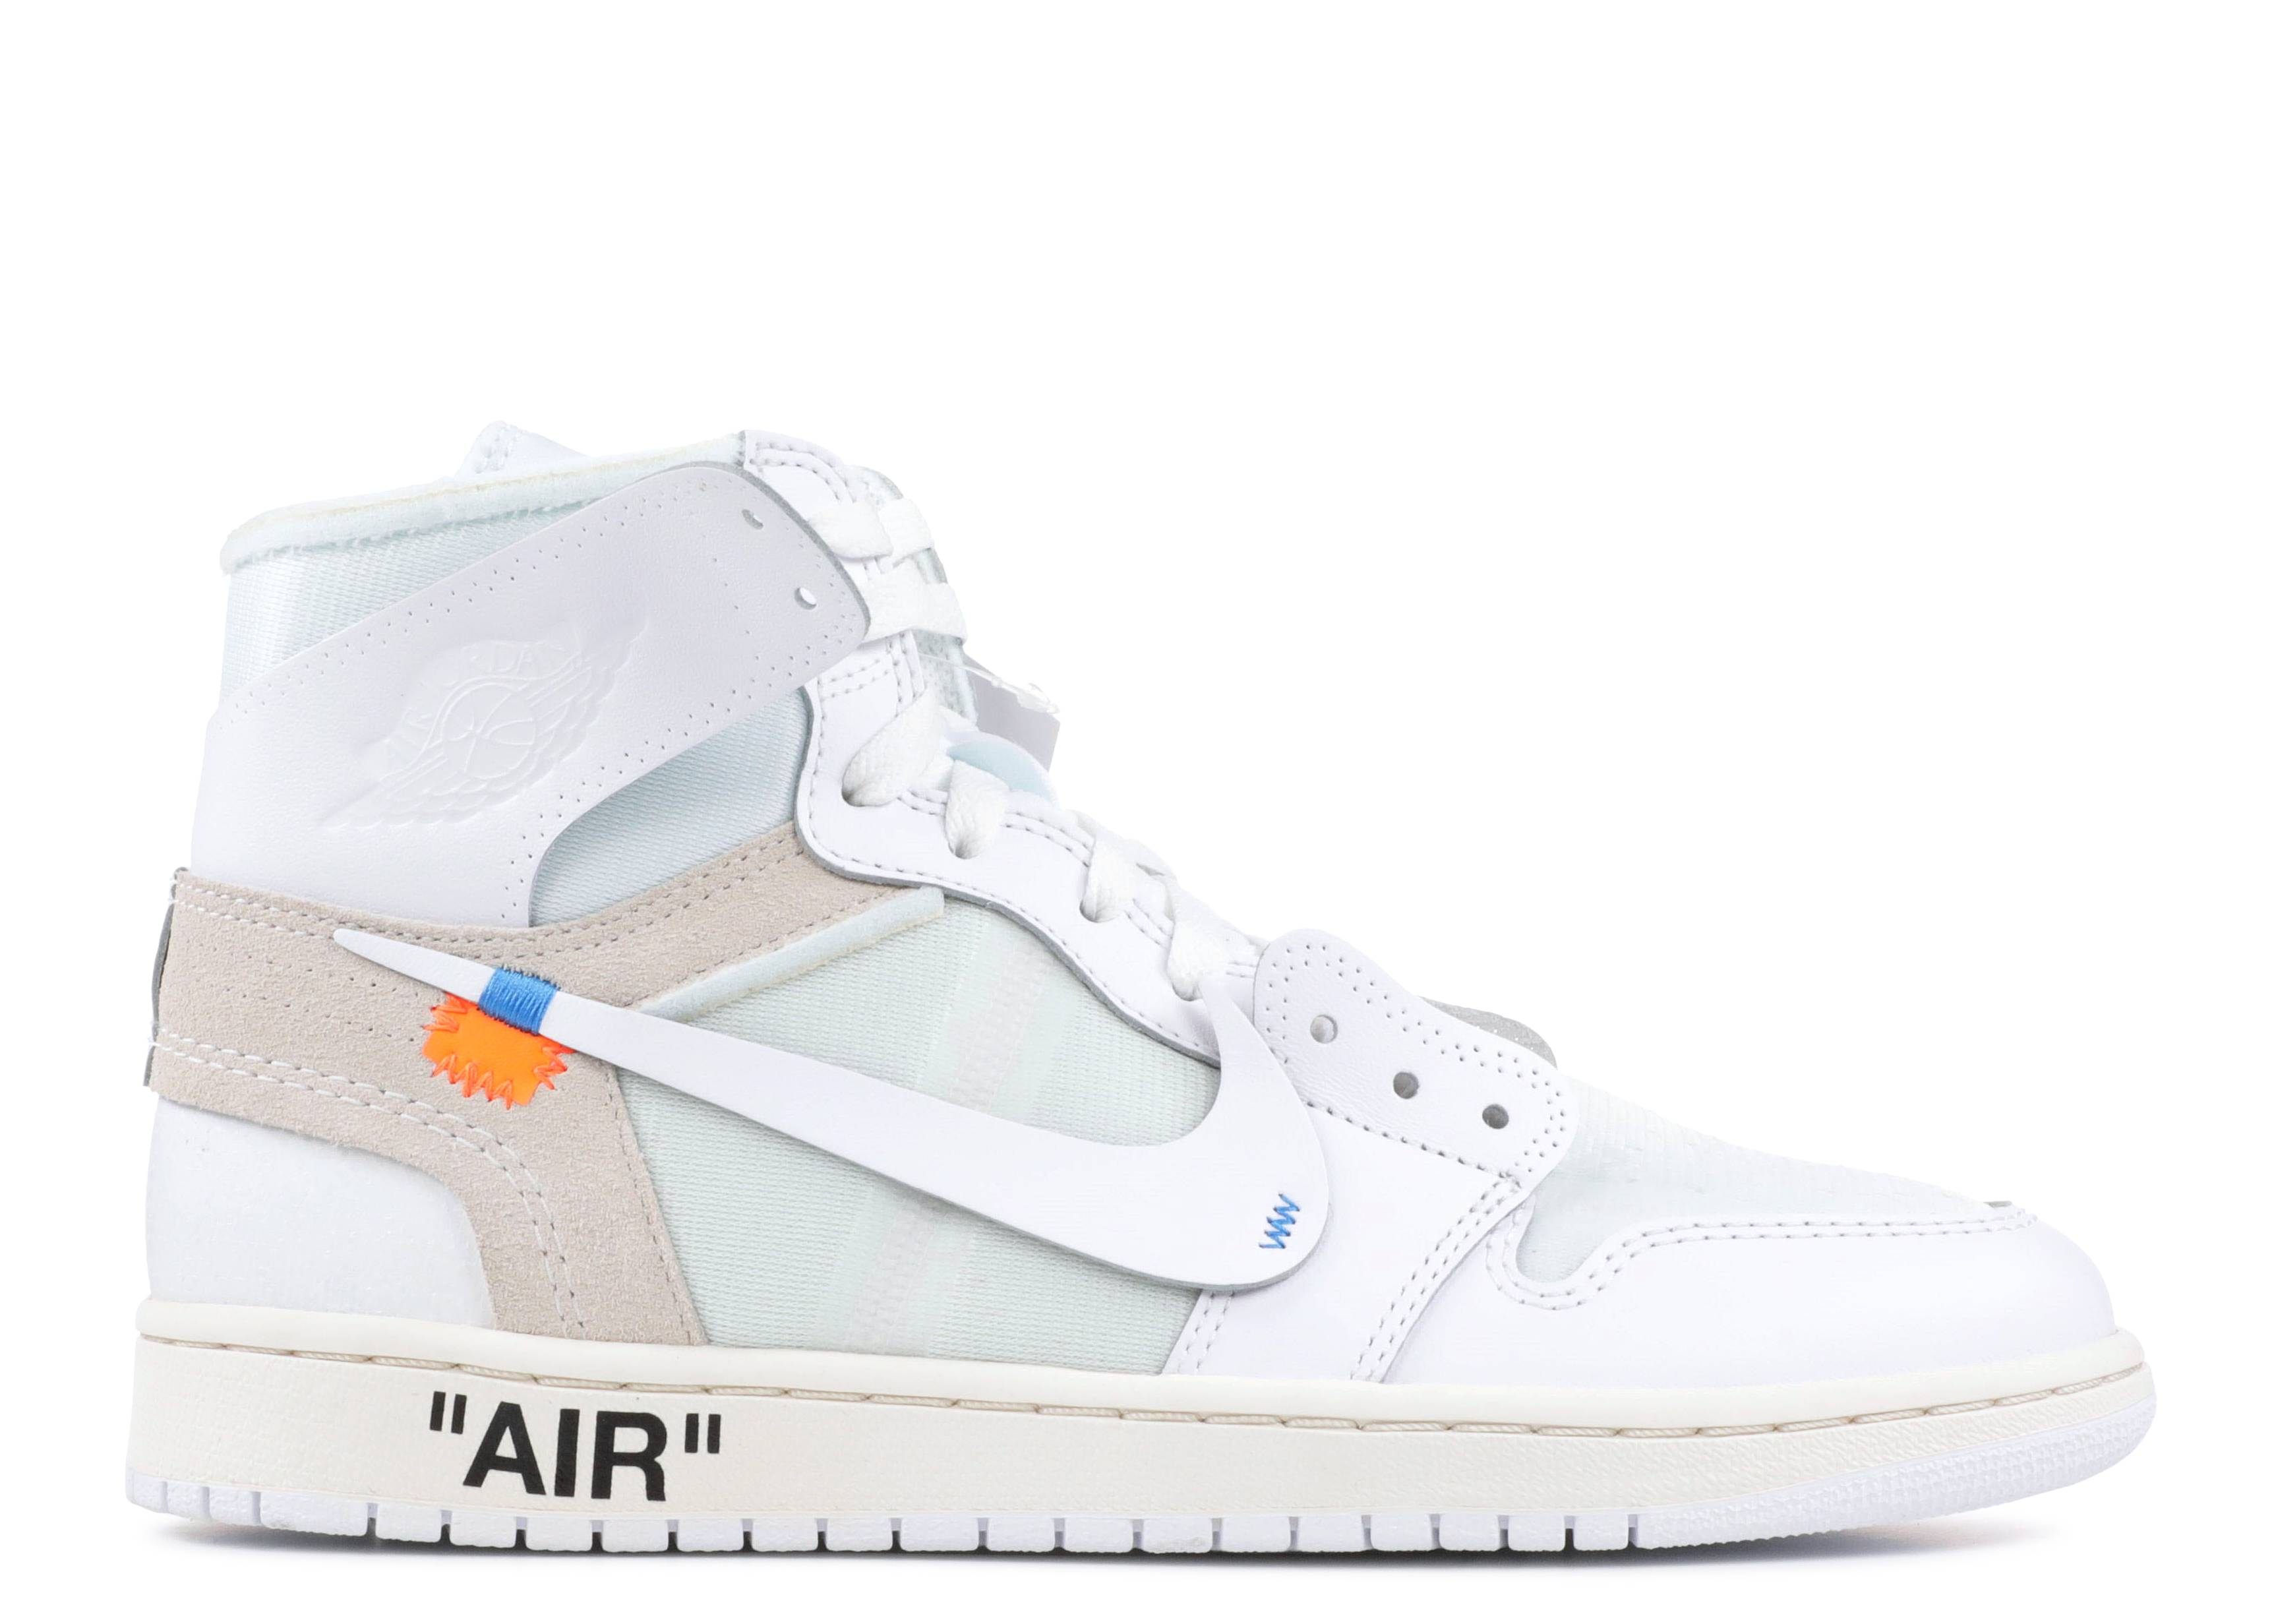 authentic quality order cheapest price OFF-WHITE X Air Jordan 1 Retro High OG 2018